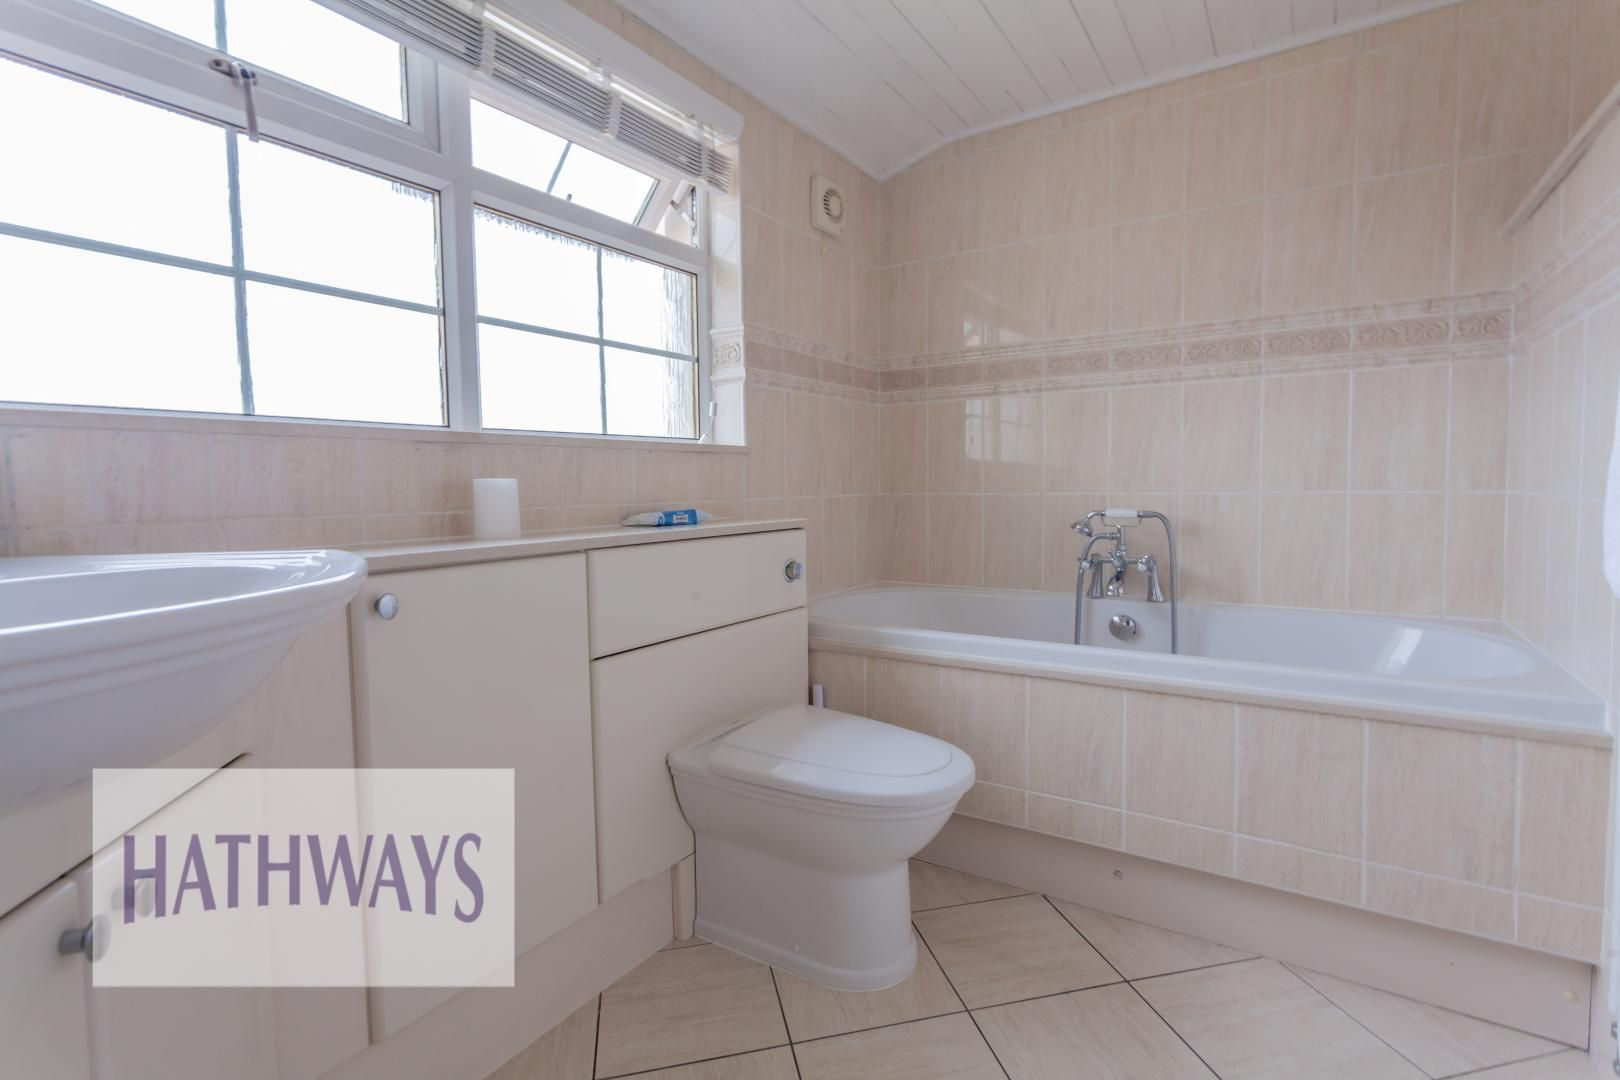 4 bed house for sale in Caerleon Road  - Property Image 22